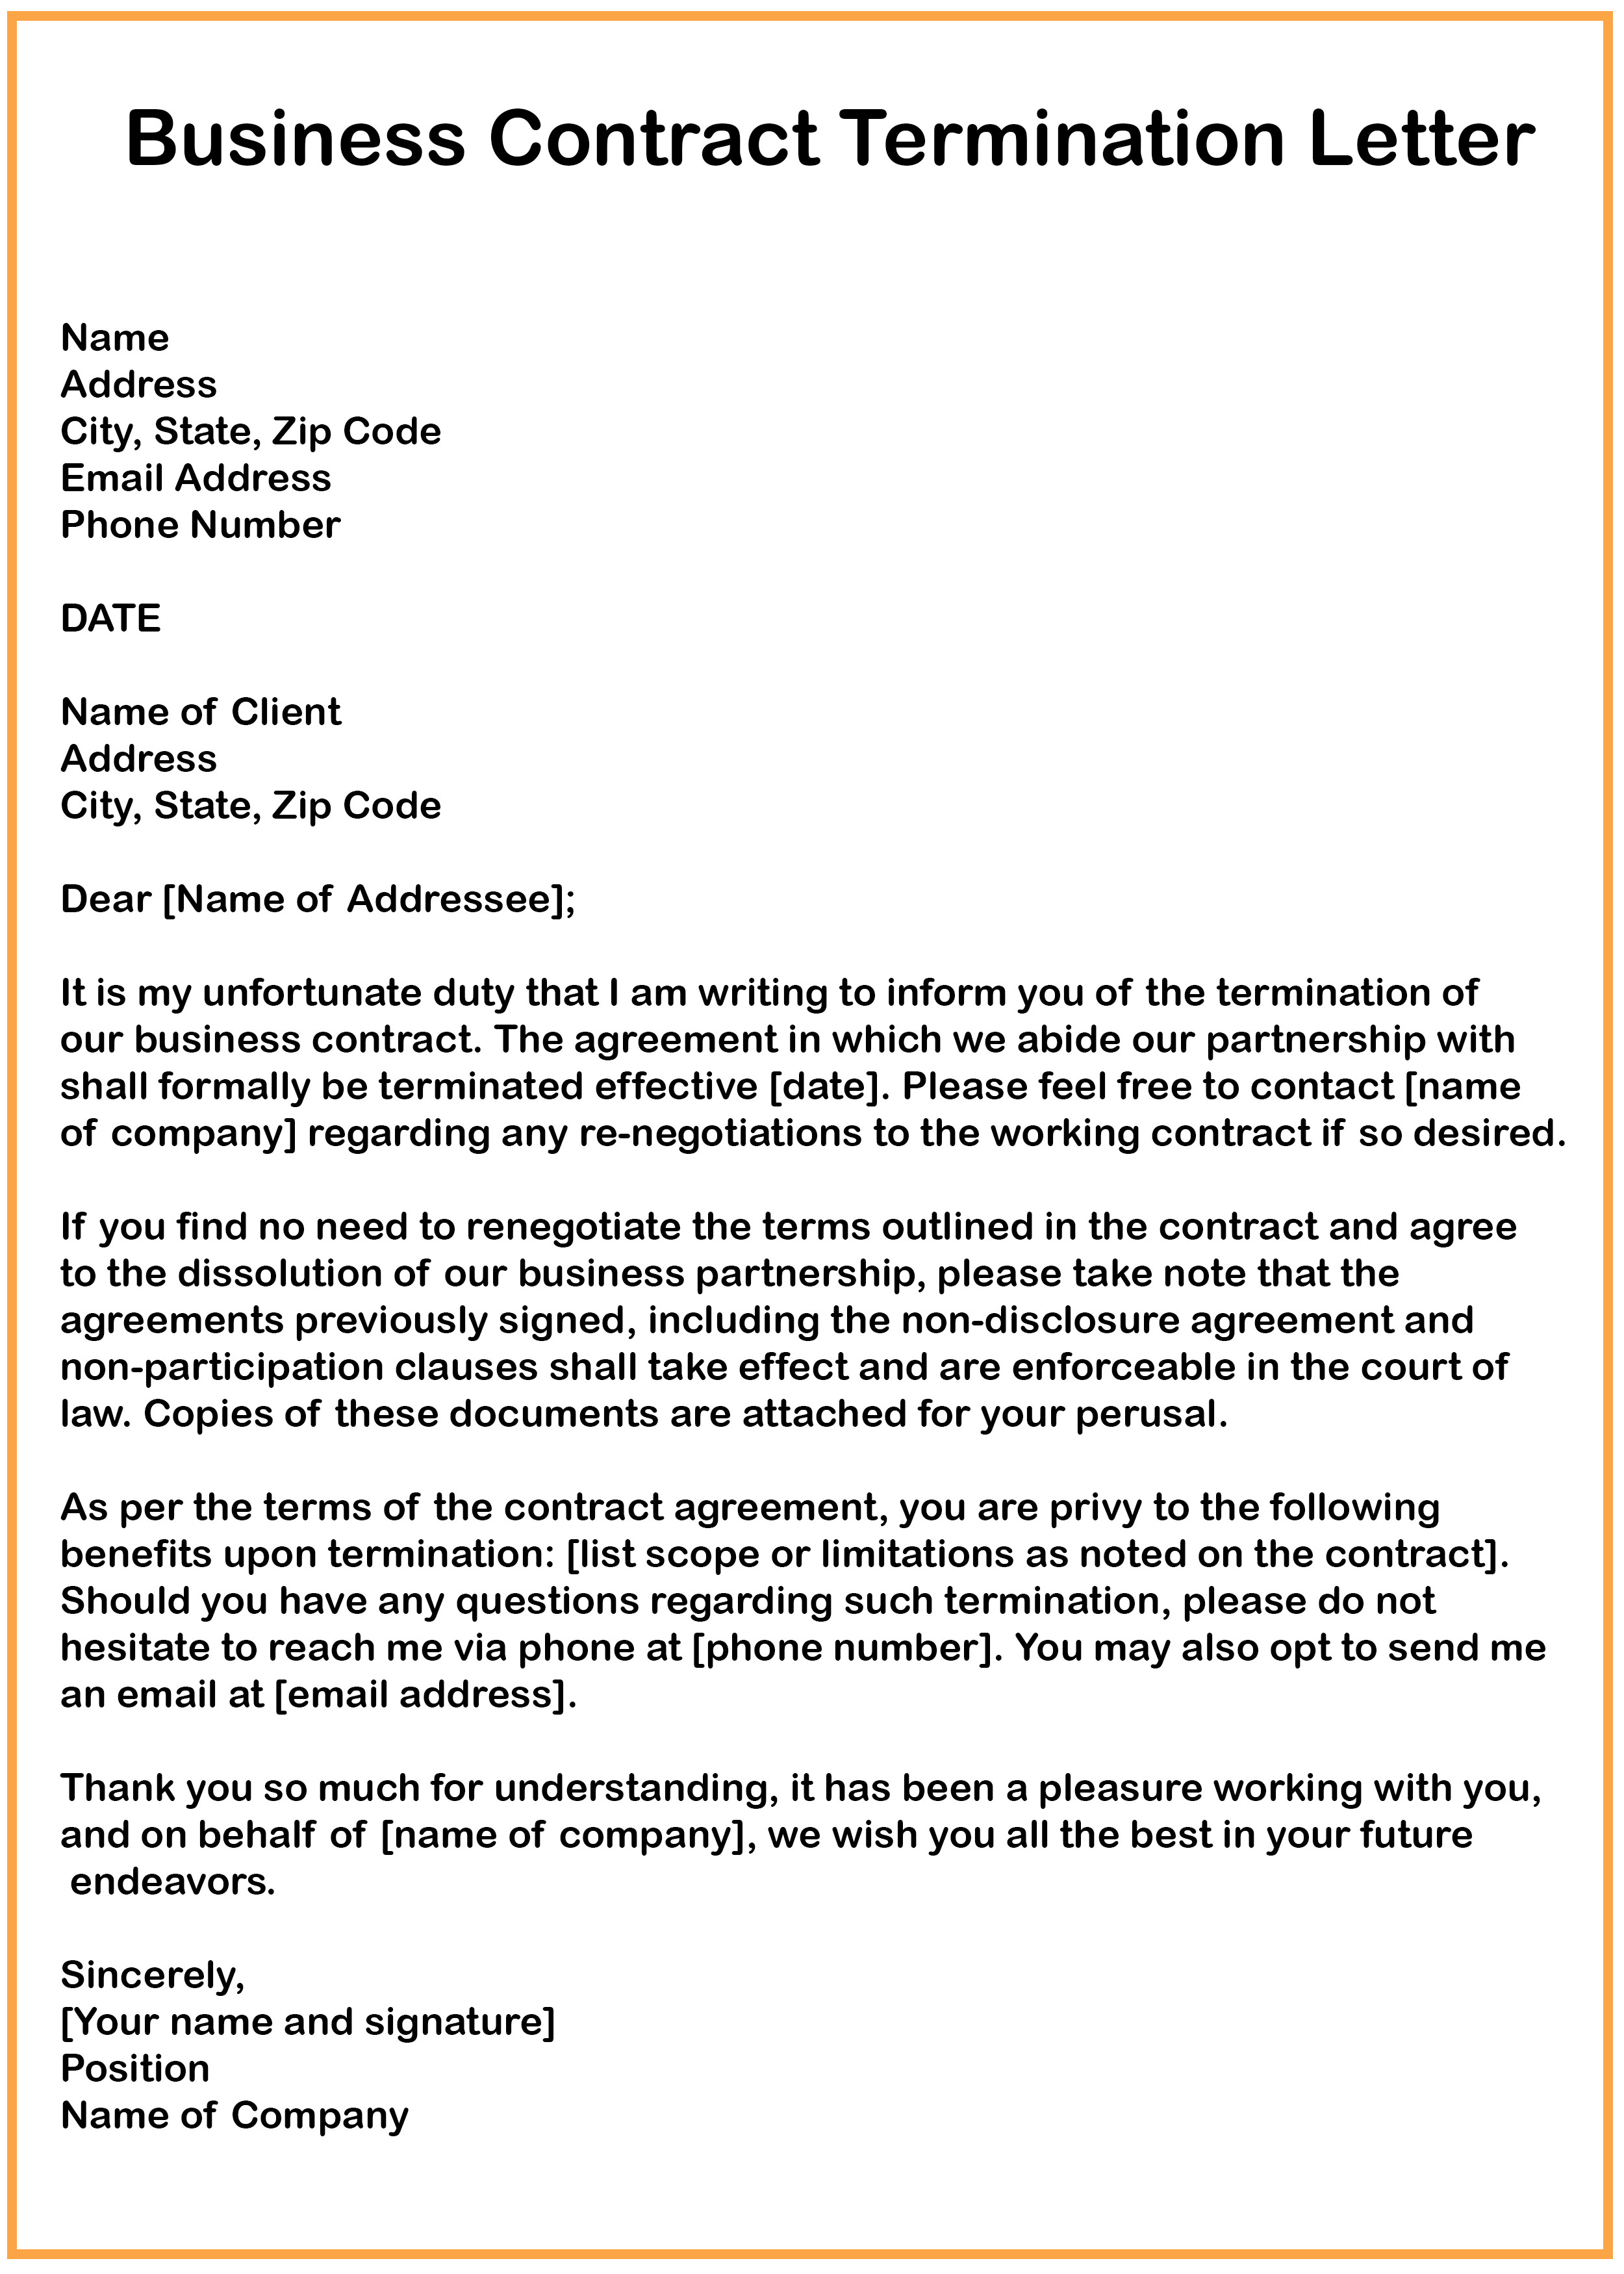 Business Contract Termination Letter 7 Business Contract Termination Letter Samples